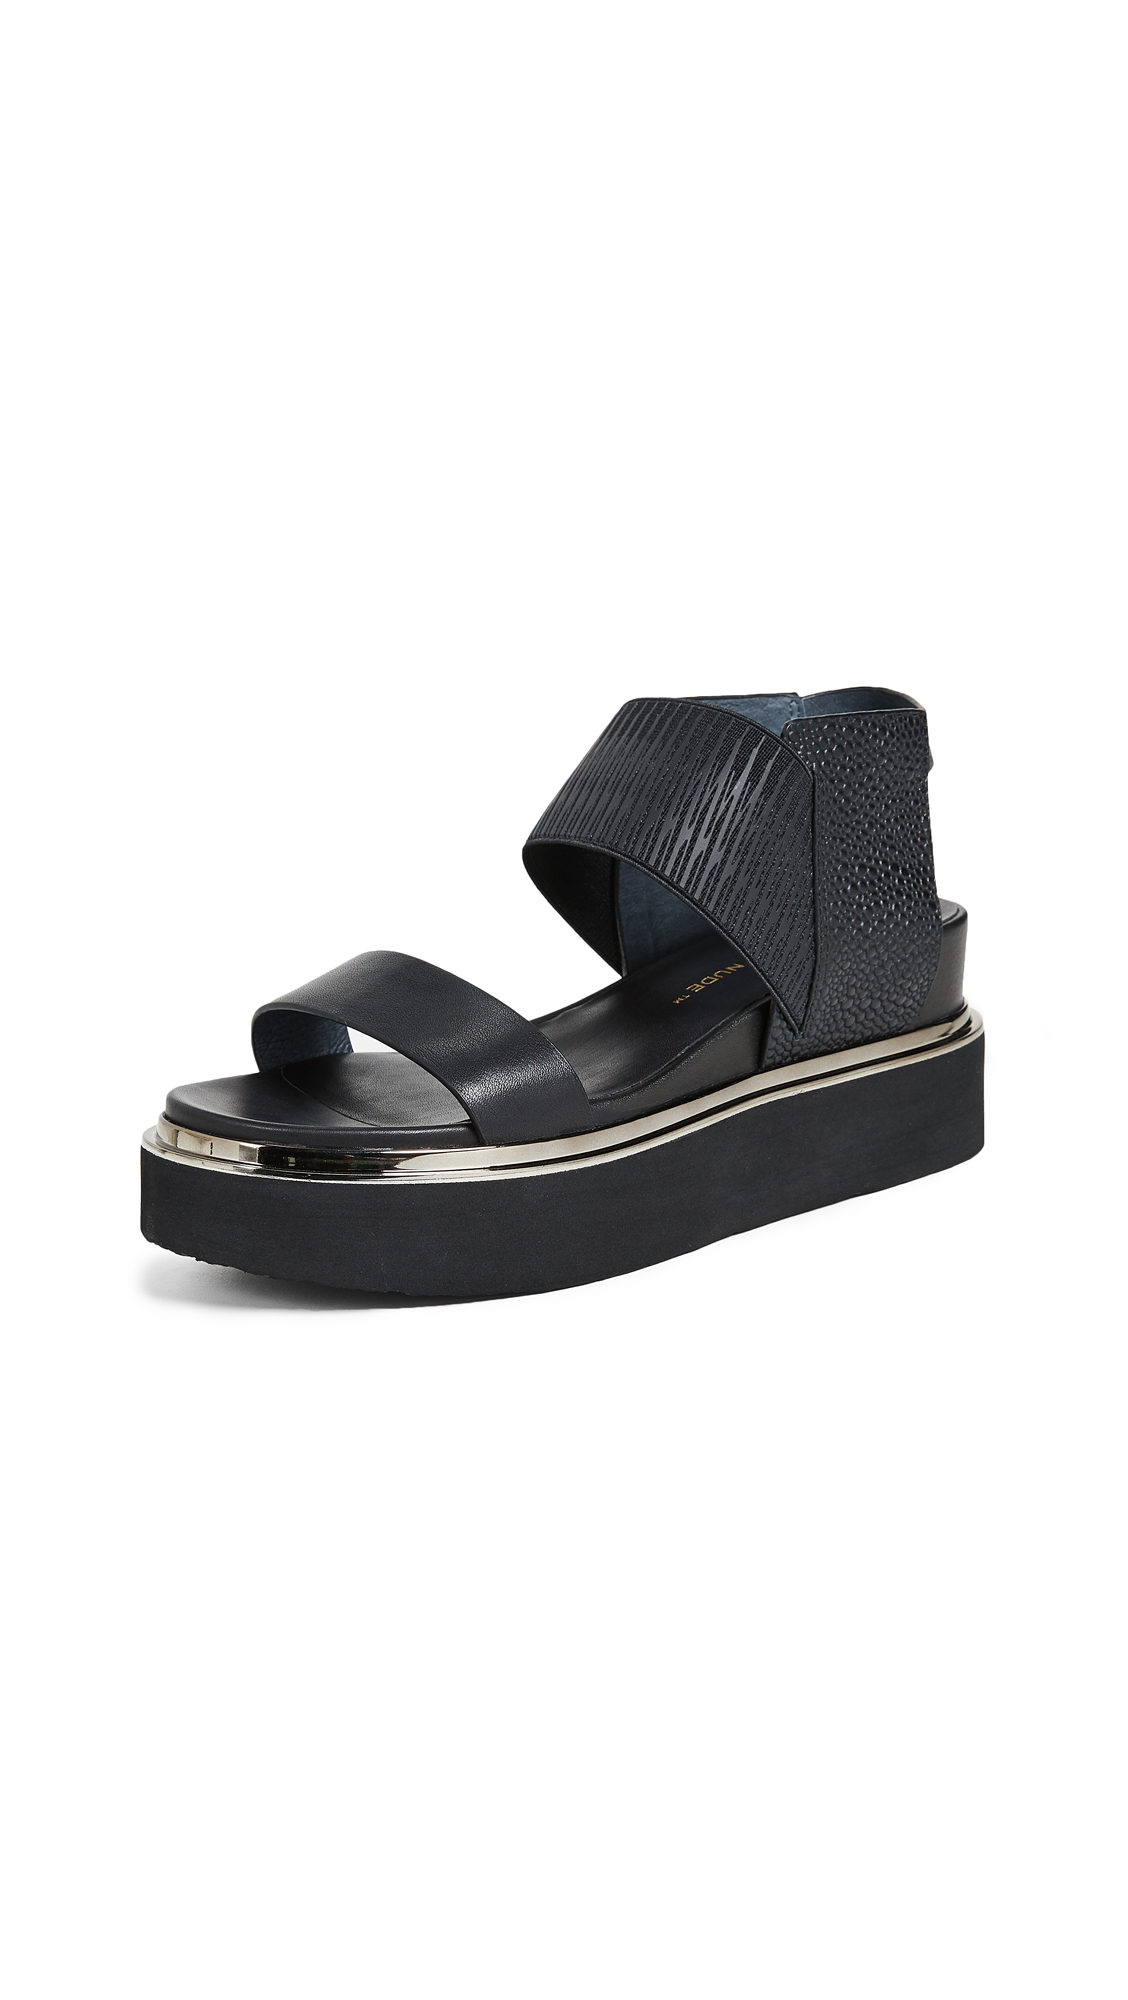 United Nude Rico Sandals In Black